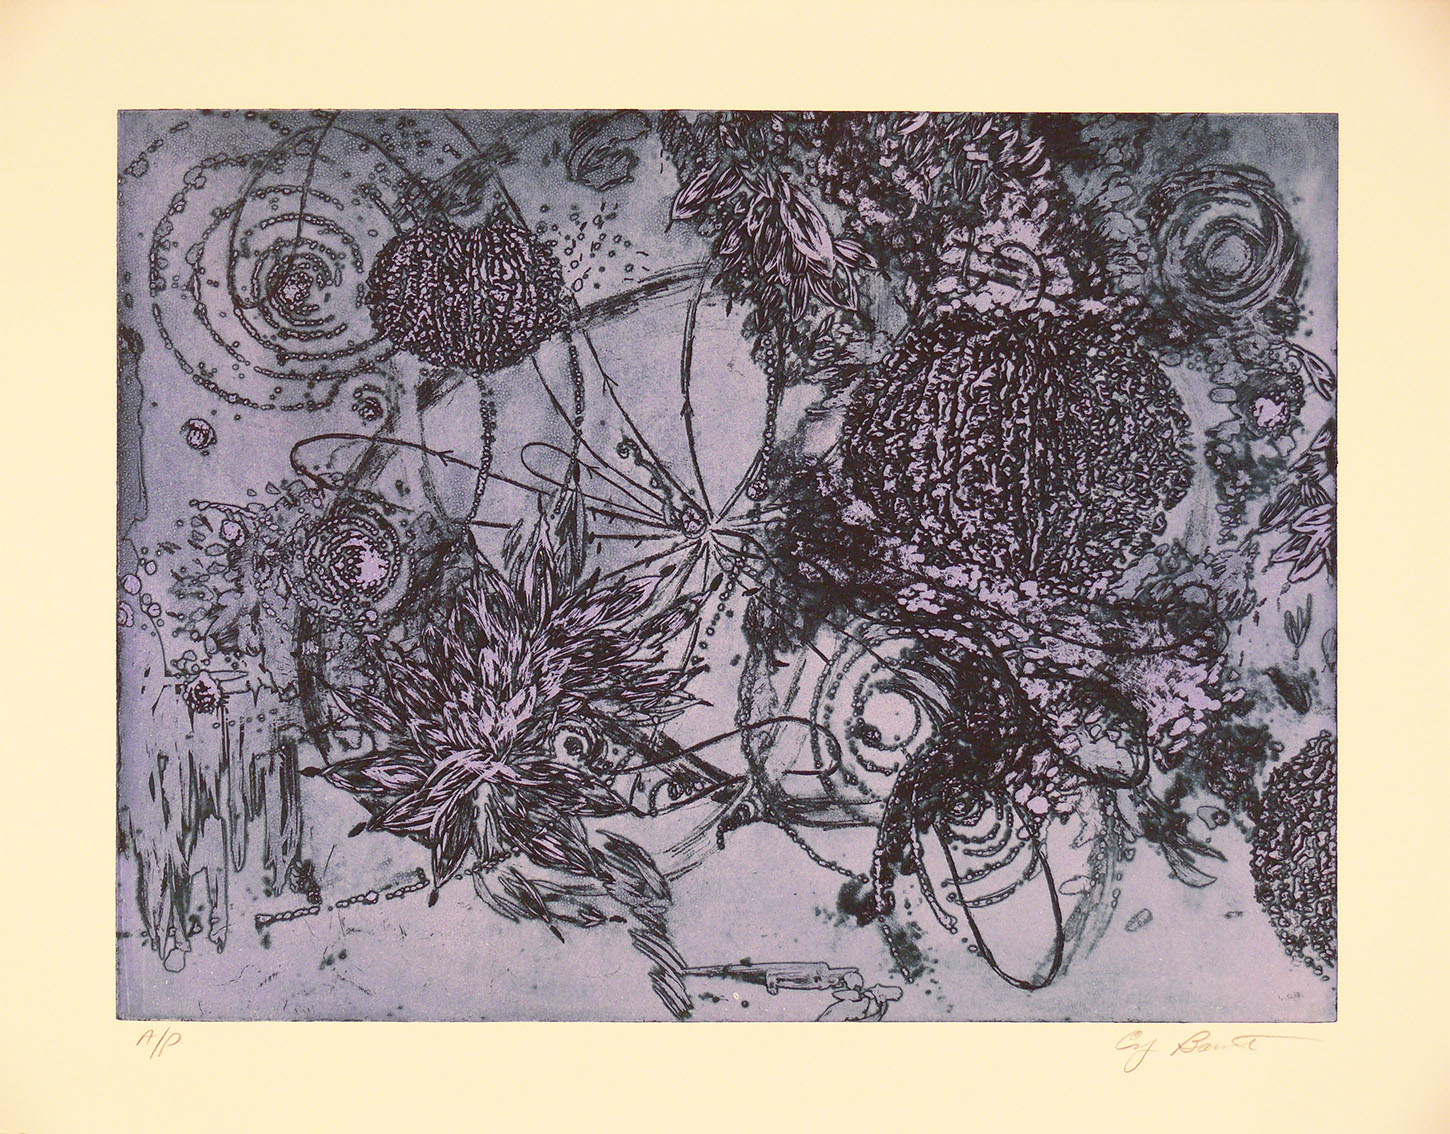 Microcosms Violet, 2006, Viscosity Etching, 22 x 30